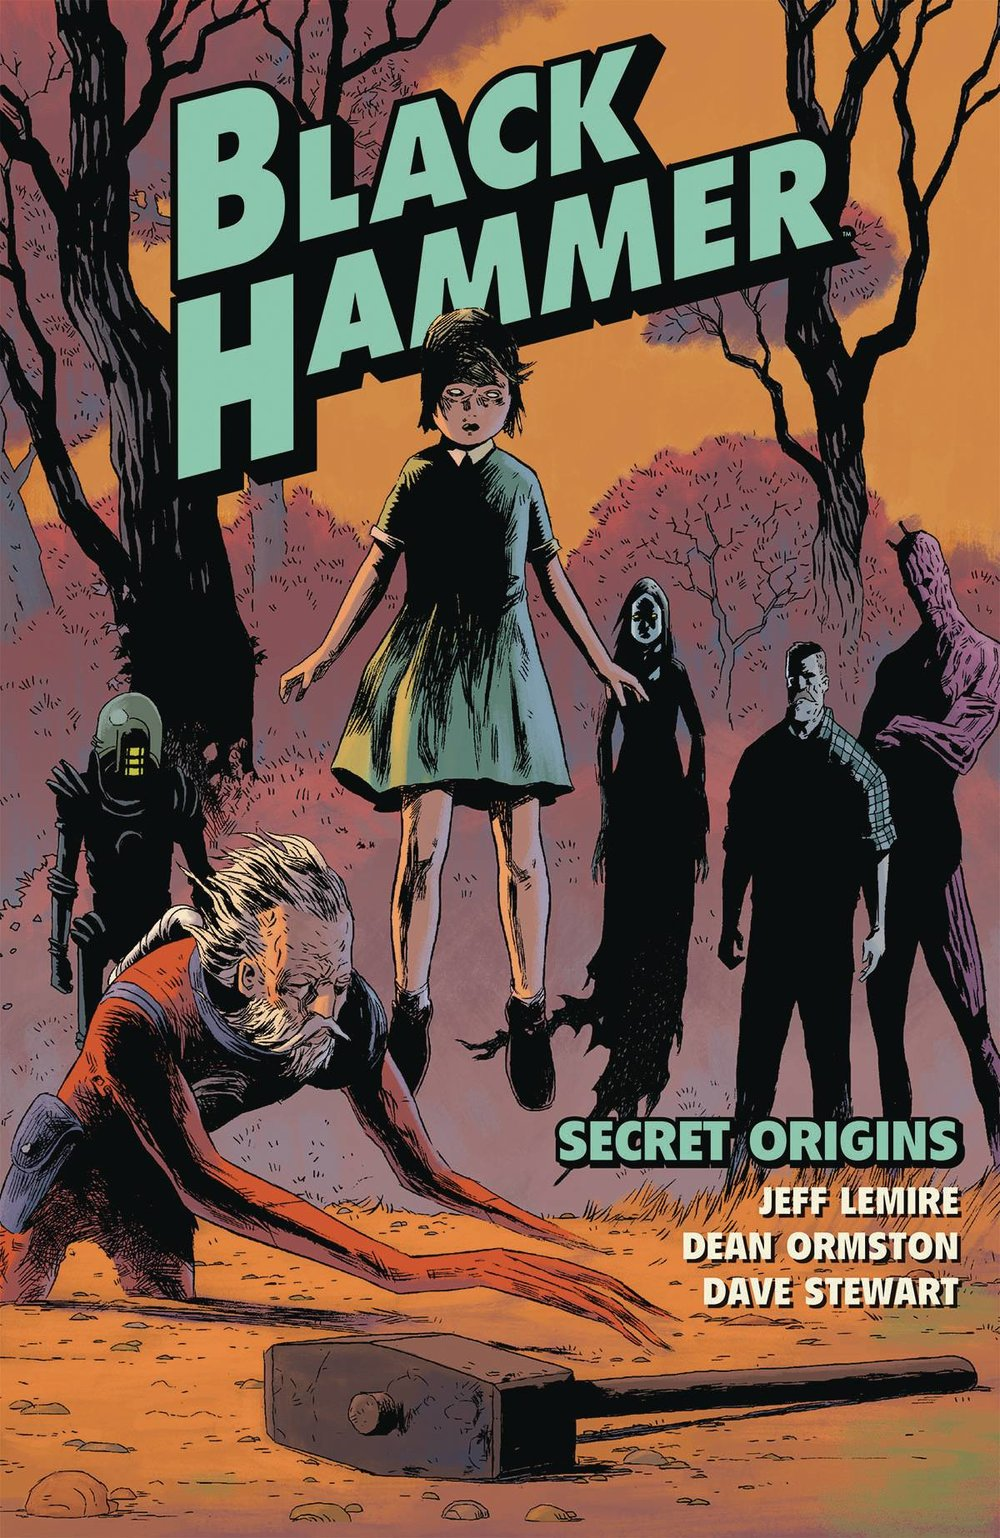 "Black Hammer Vol 1 - Mike's PickThe heroes of Spiral City, after defeating a powerful foe, were exiled by forces unknown for reasons unknown to a small farm town.  As they are unable to leave, they struggle to adjust to their new lives since there seems to be no hope of rescue.  Of course, there's more going on than meets the eye!  With Black Hammer, Jeff Lemire (Descender, Old Man Logan) and Dean Ormston (Lucifer) have created a deconstructionist superhero saga that is both fun and mysterious.  While playing with tropes and subverting reader expectations, they weave an emotionally resonant and gripping sci-fi yarn that focuses heavily on character development and world building.  The mystery of what happened to the heroes is unraveling ever so slowly but the pacing is still tight.  Lemire's character work reminds you of heroes you're familiar with, while Ormston's quirky art breathes new life into the archetypes.  The first volume, titled ""Secret Origins"" and collecting issues one through six, is available now and volume two is coming soon.  For my money, Dark Horse's Black Hammer is the best superhero book on the stands."